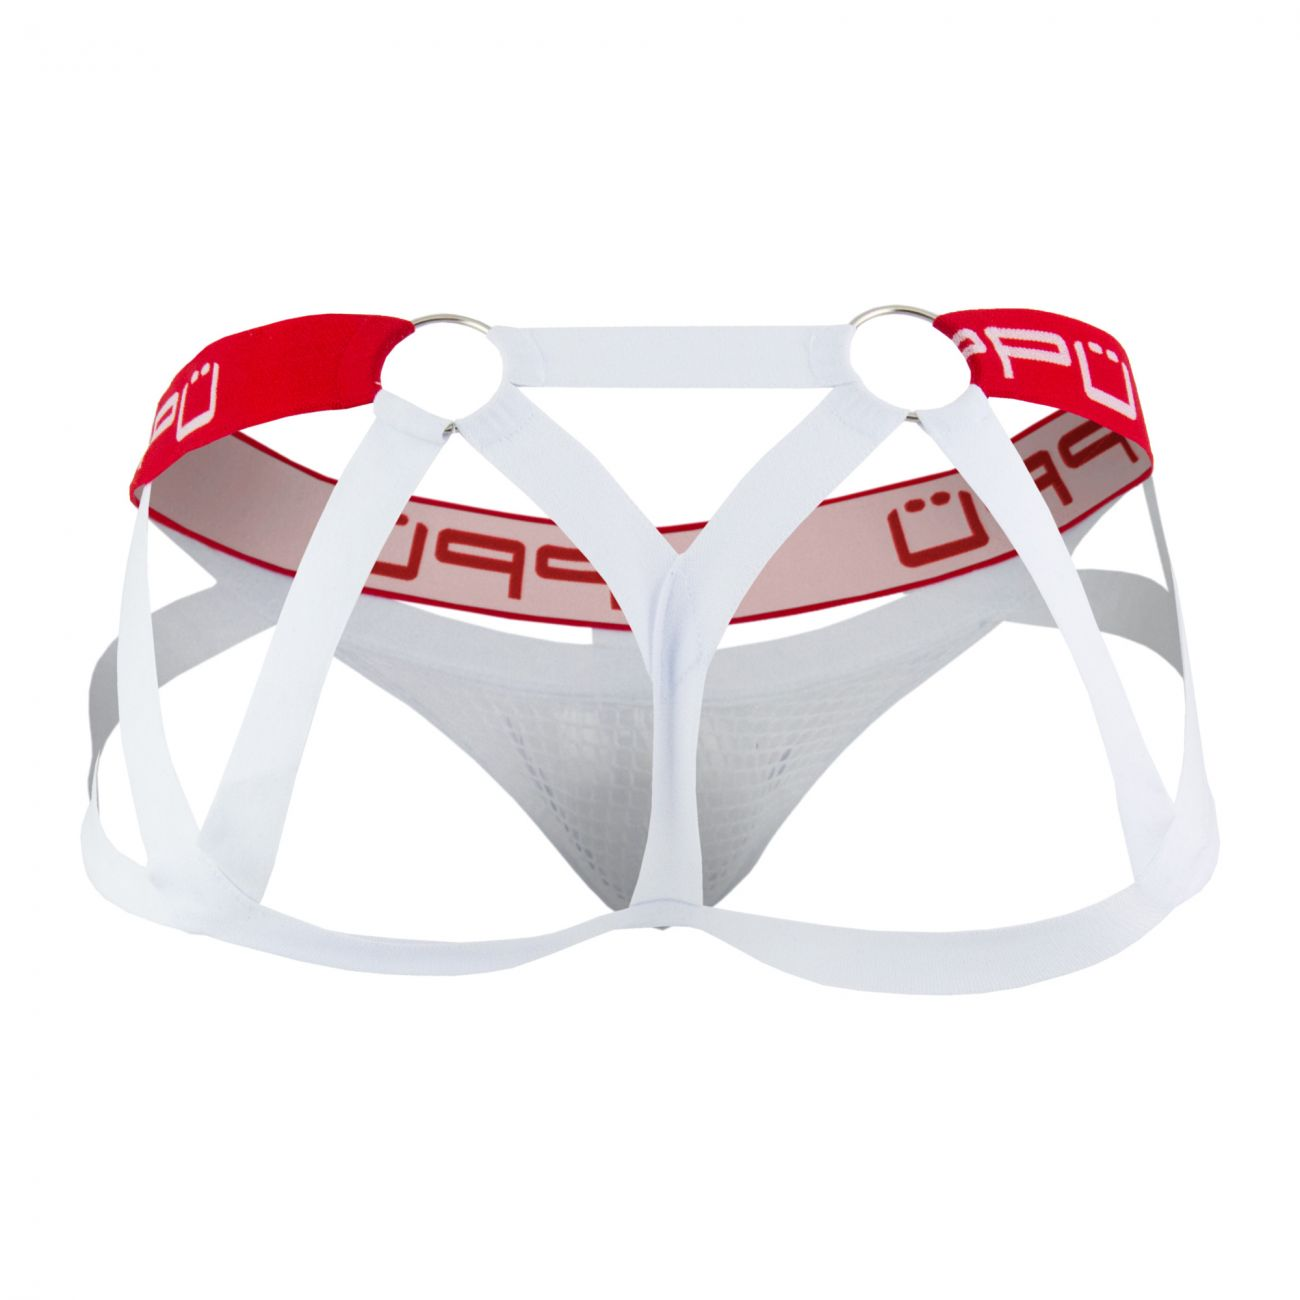 PPU 1713 Jockstrap Color White